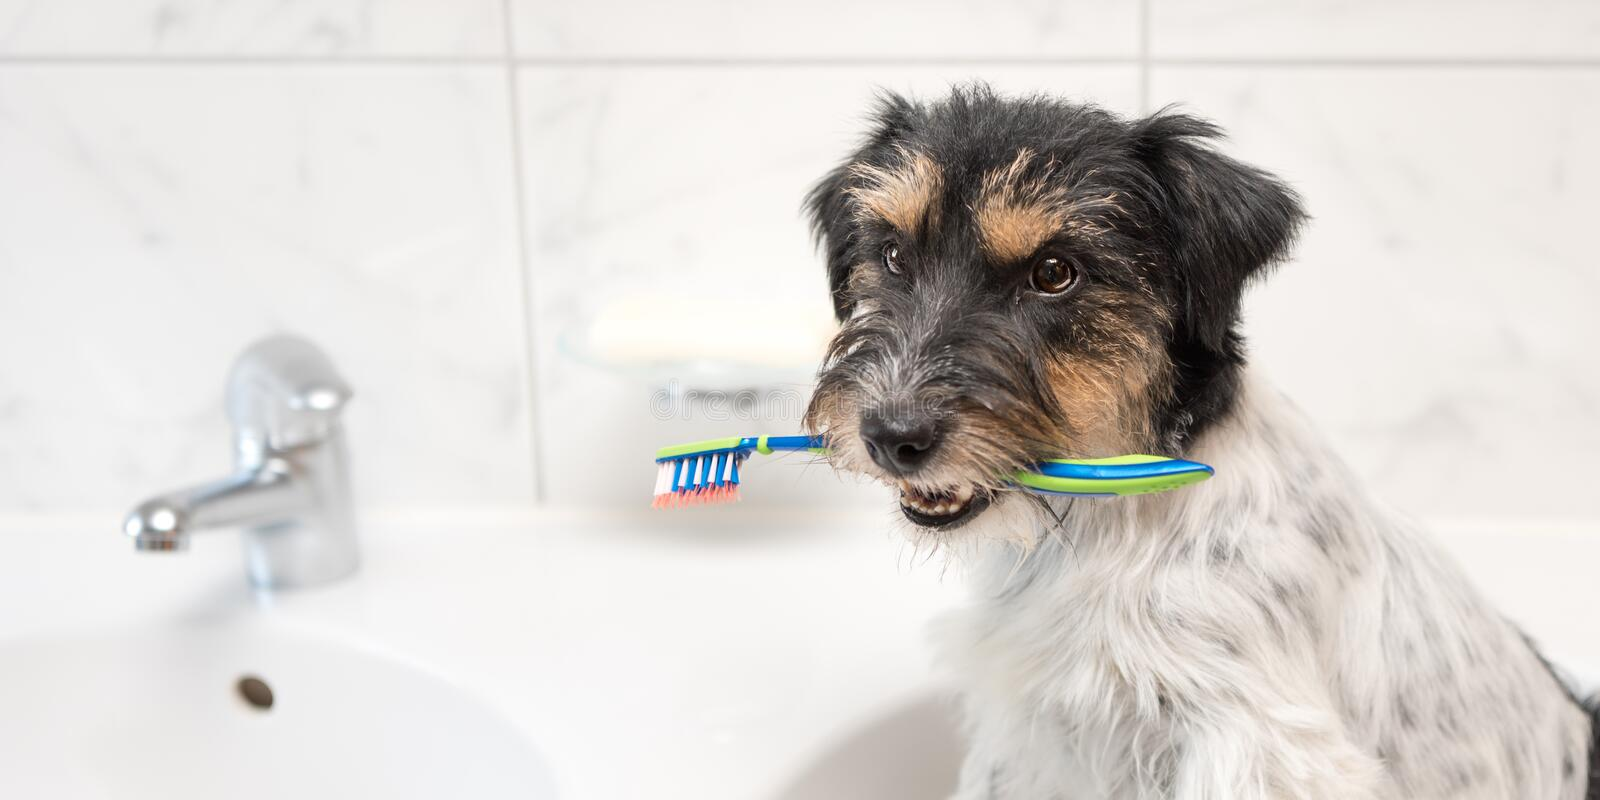 Jack Russell Terrier dog holding toothbrush . Ready to brush the teeth to avoid the need for a dentist. Dog holding toothbrush in bathroom. Young Jack Russell royalty free stock images